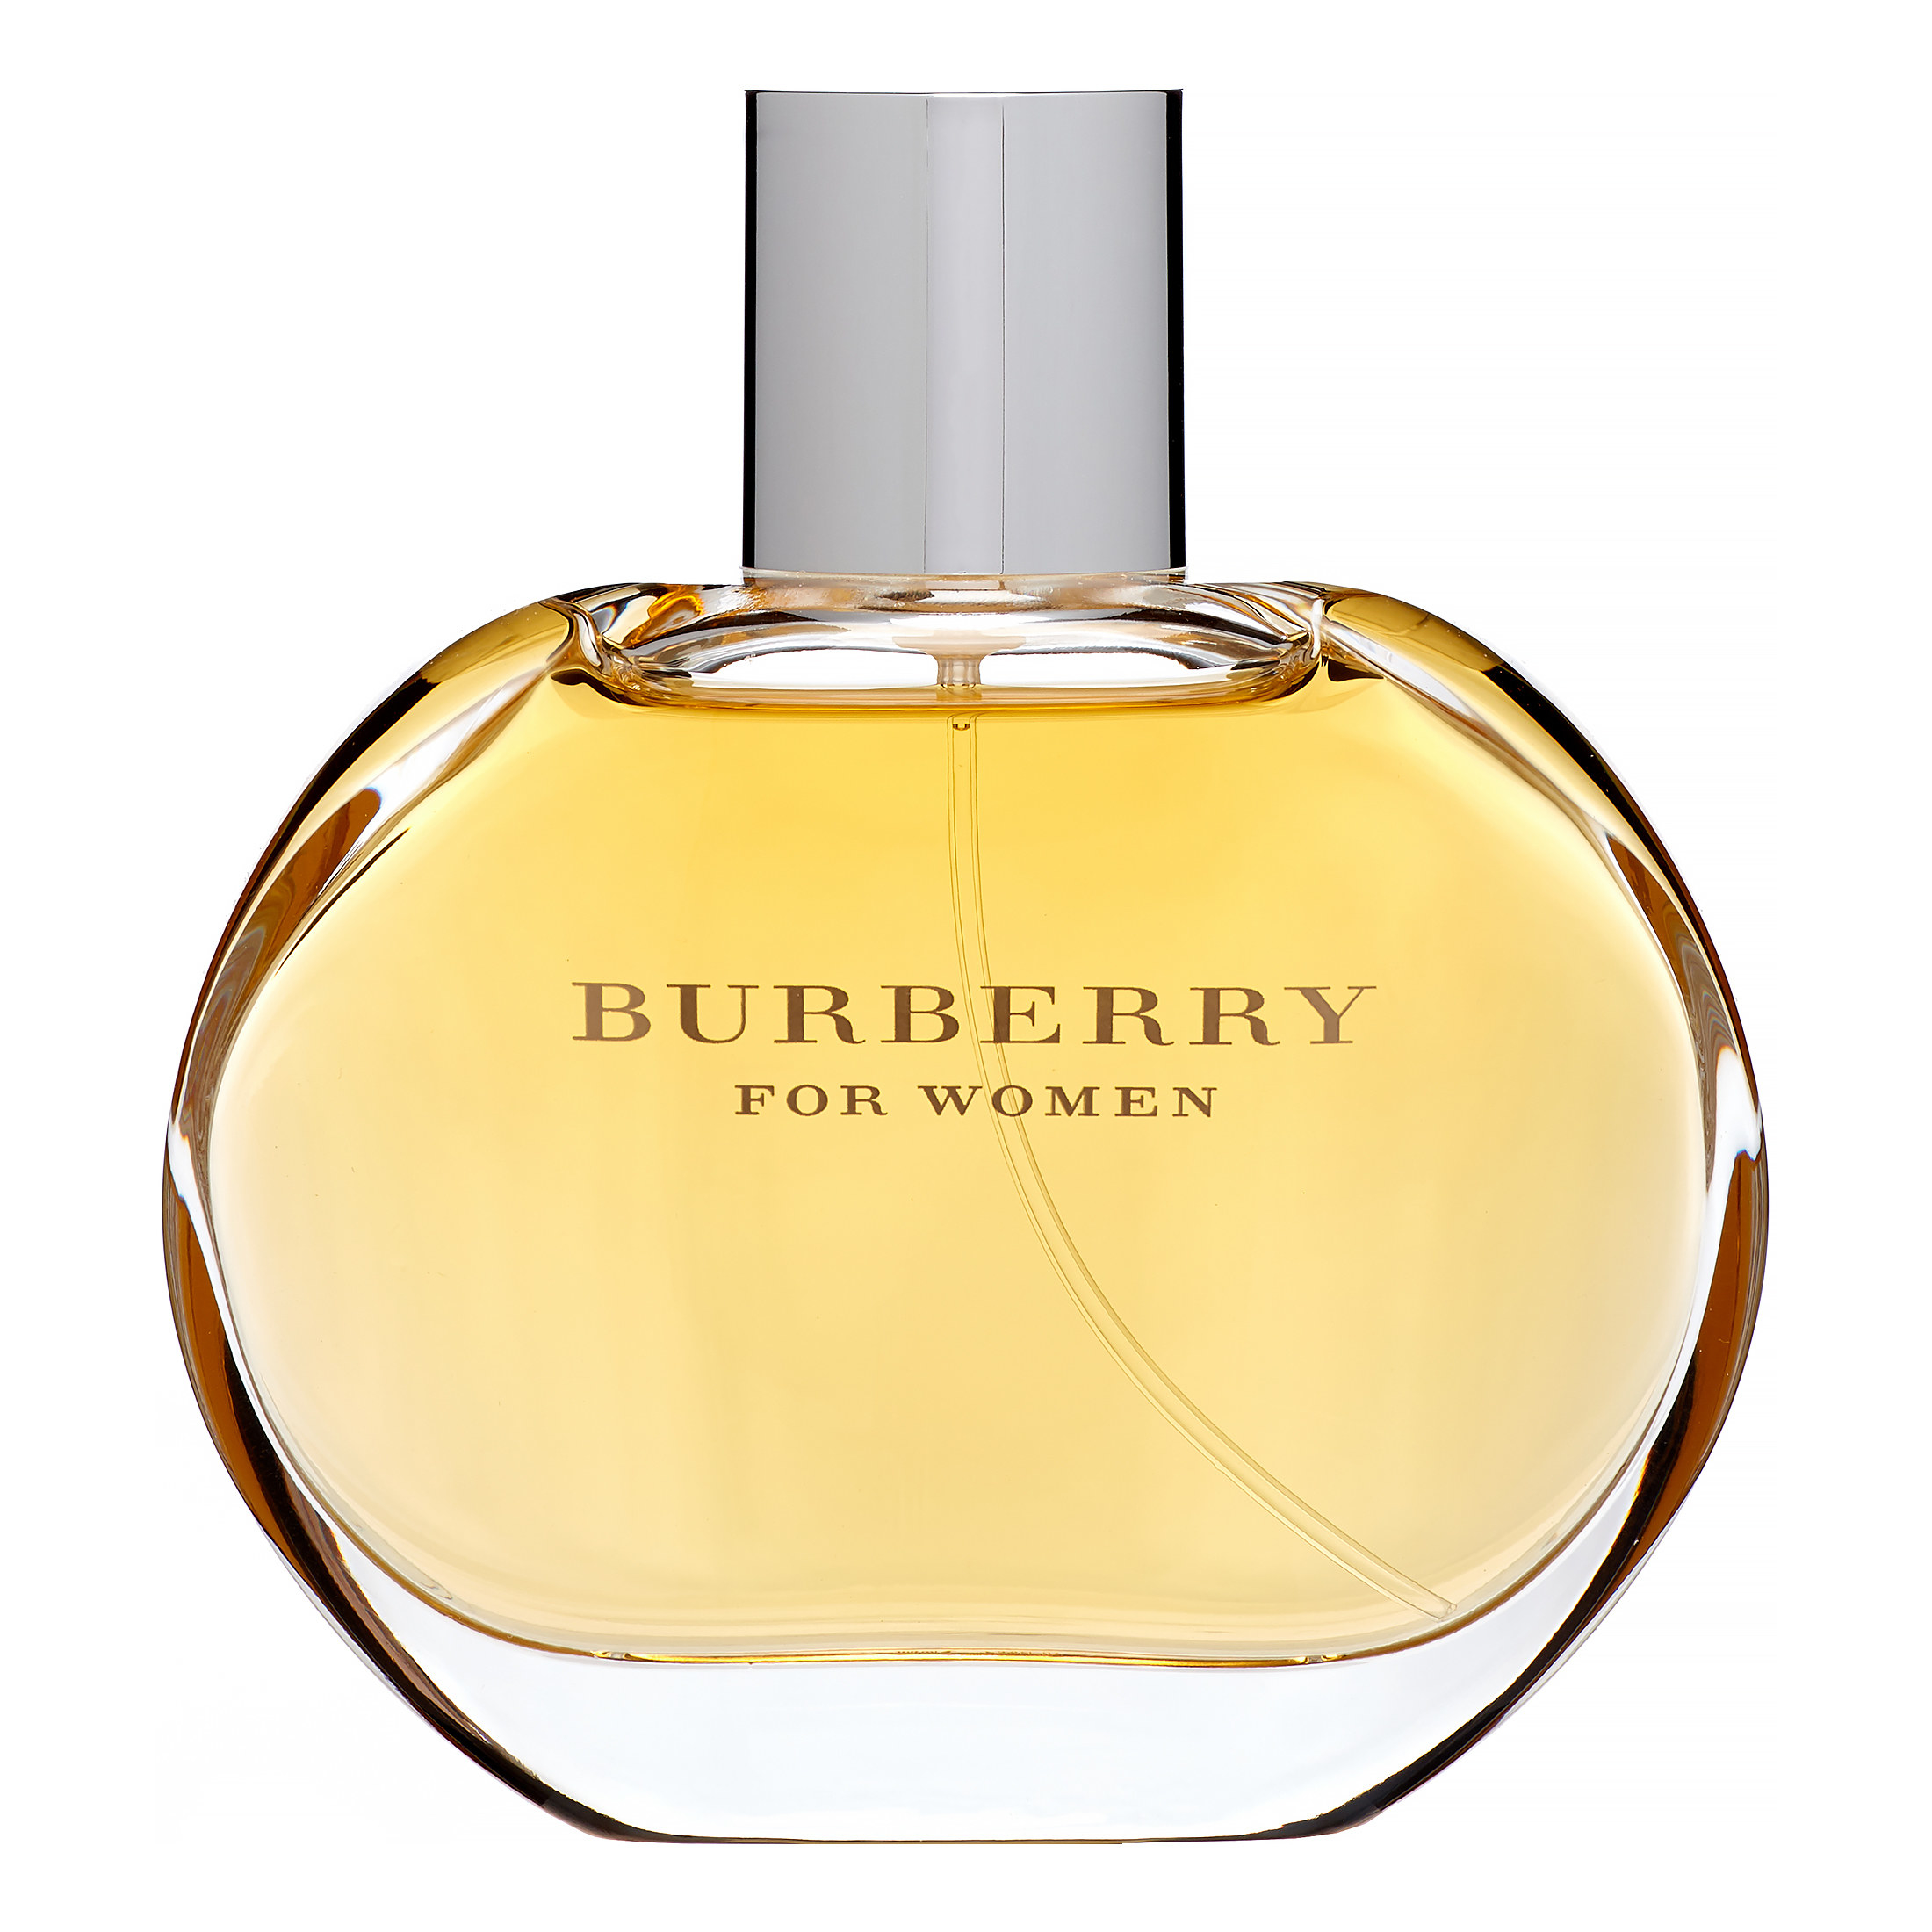 burberry for women perfume bottle